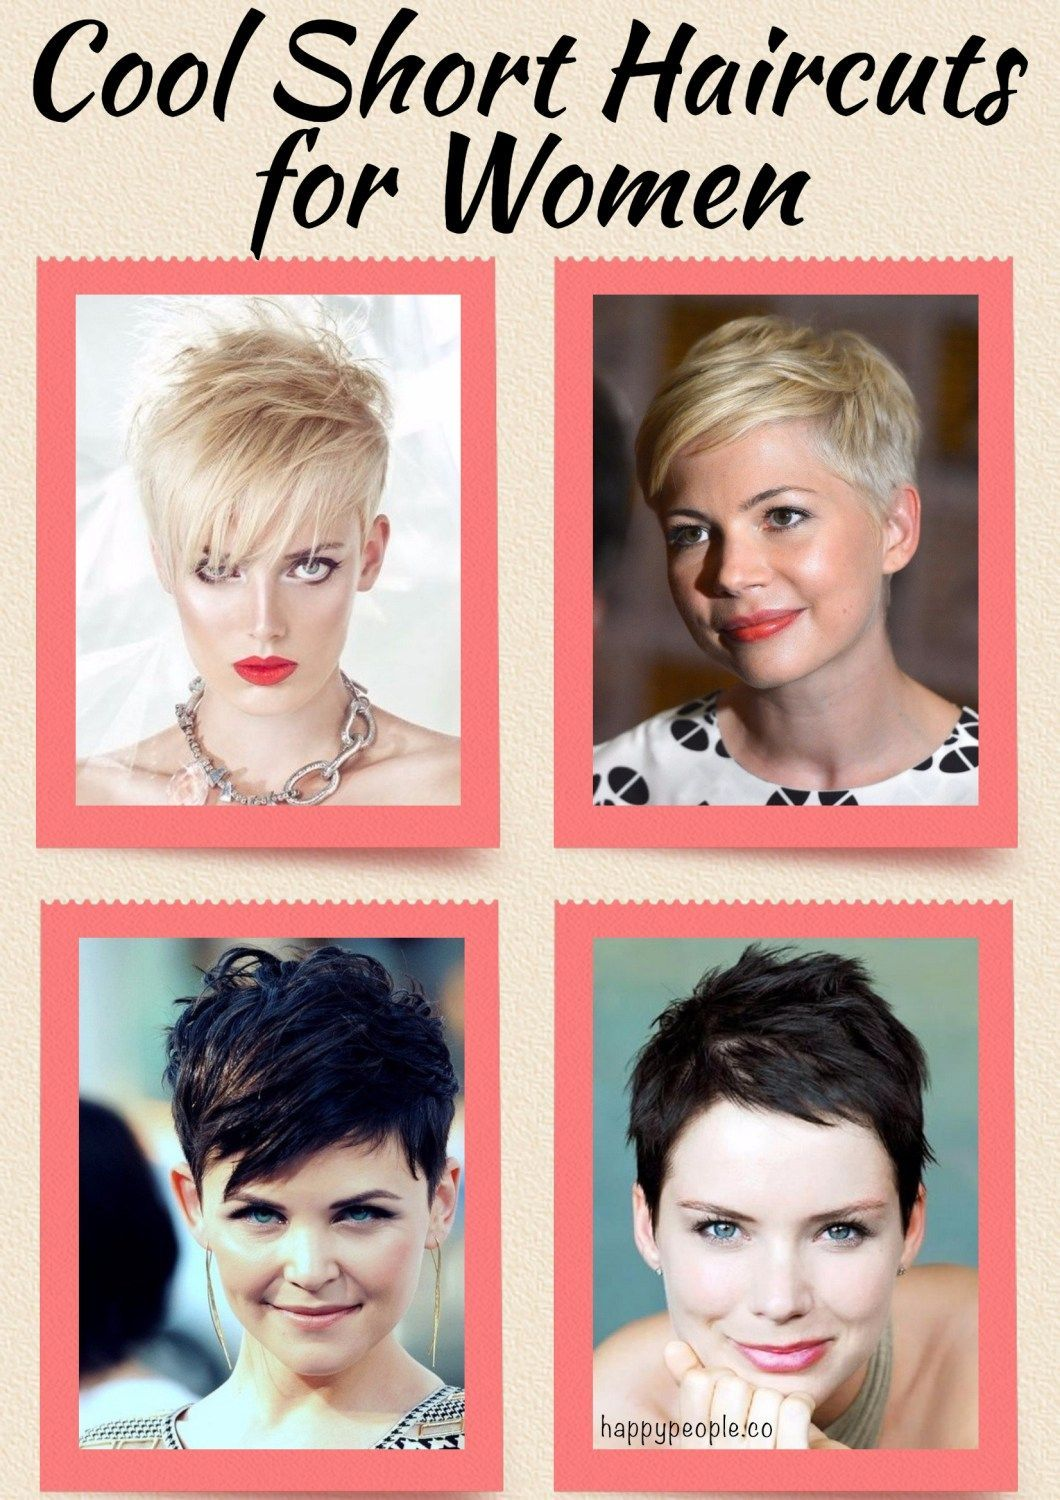 cool short haircuts for women easyhairstyles easy hairstyles